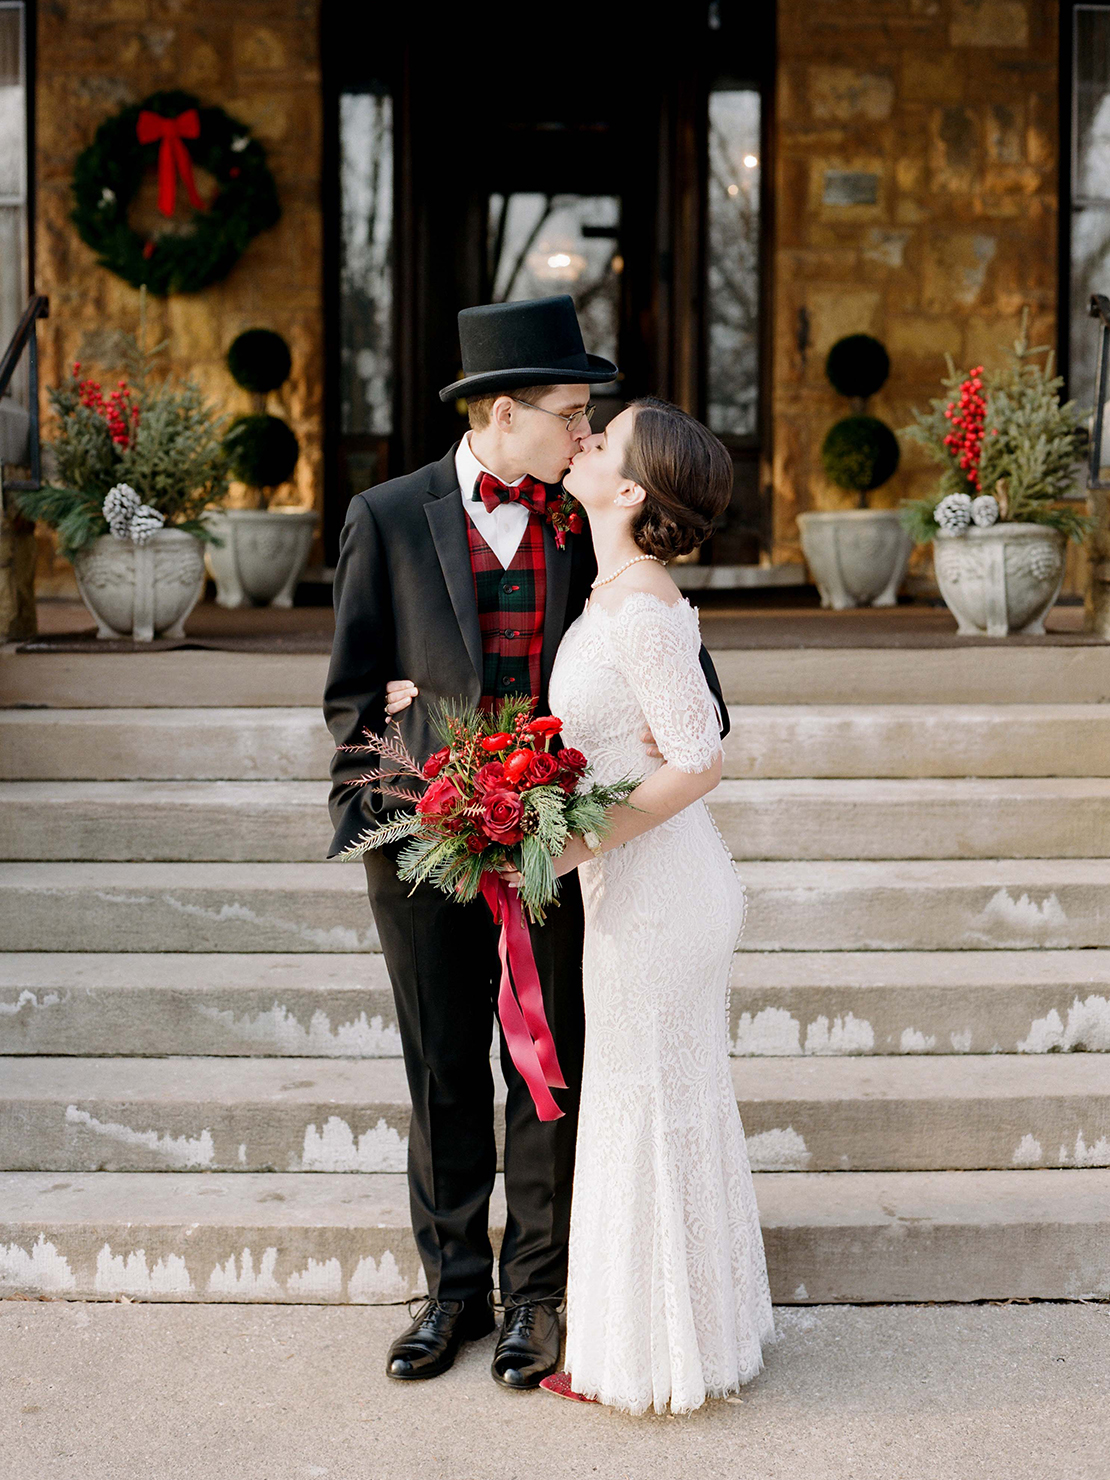 Heidi Vail Photography | Winter Wedding Kiss at Summit Manor Reception House, Saint Paul, Minnesota | Destination Fine Art Wedding Photographer | Based in Orlando, Florida